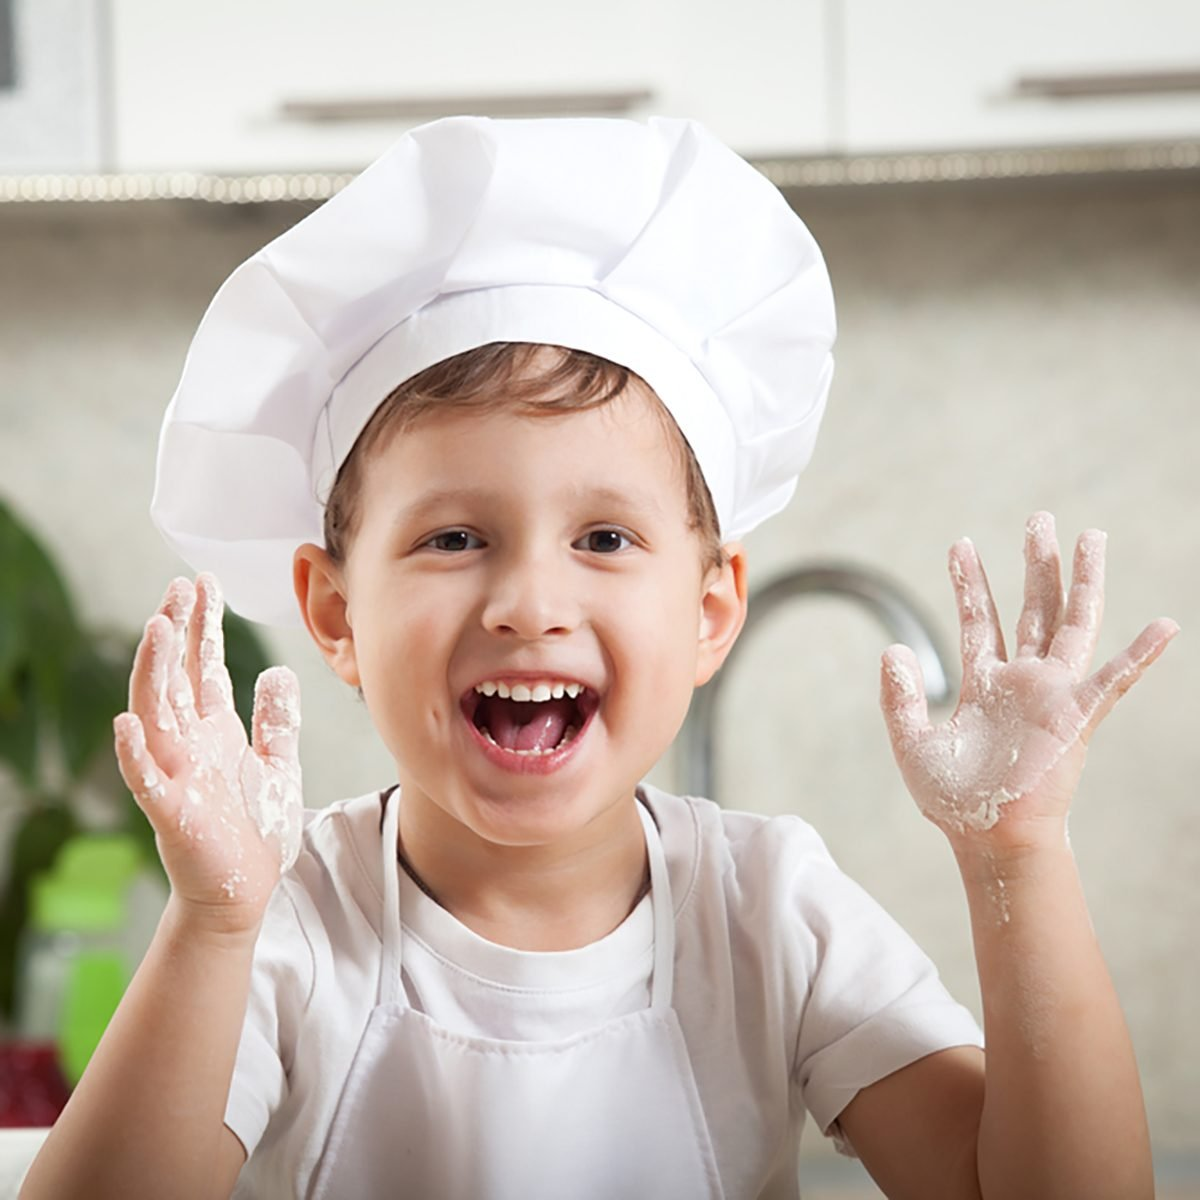 funny kid with flour